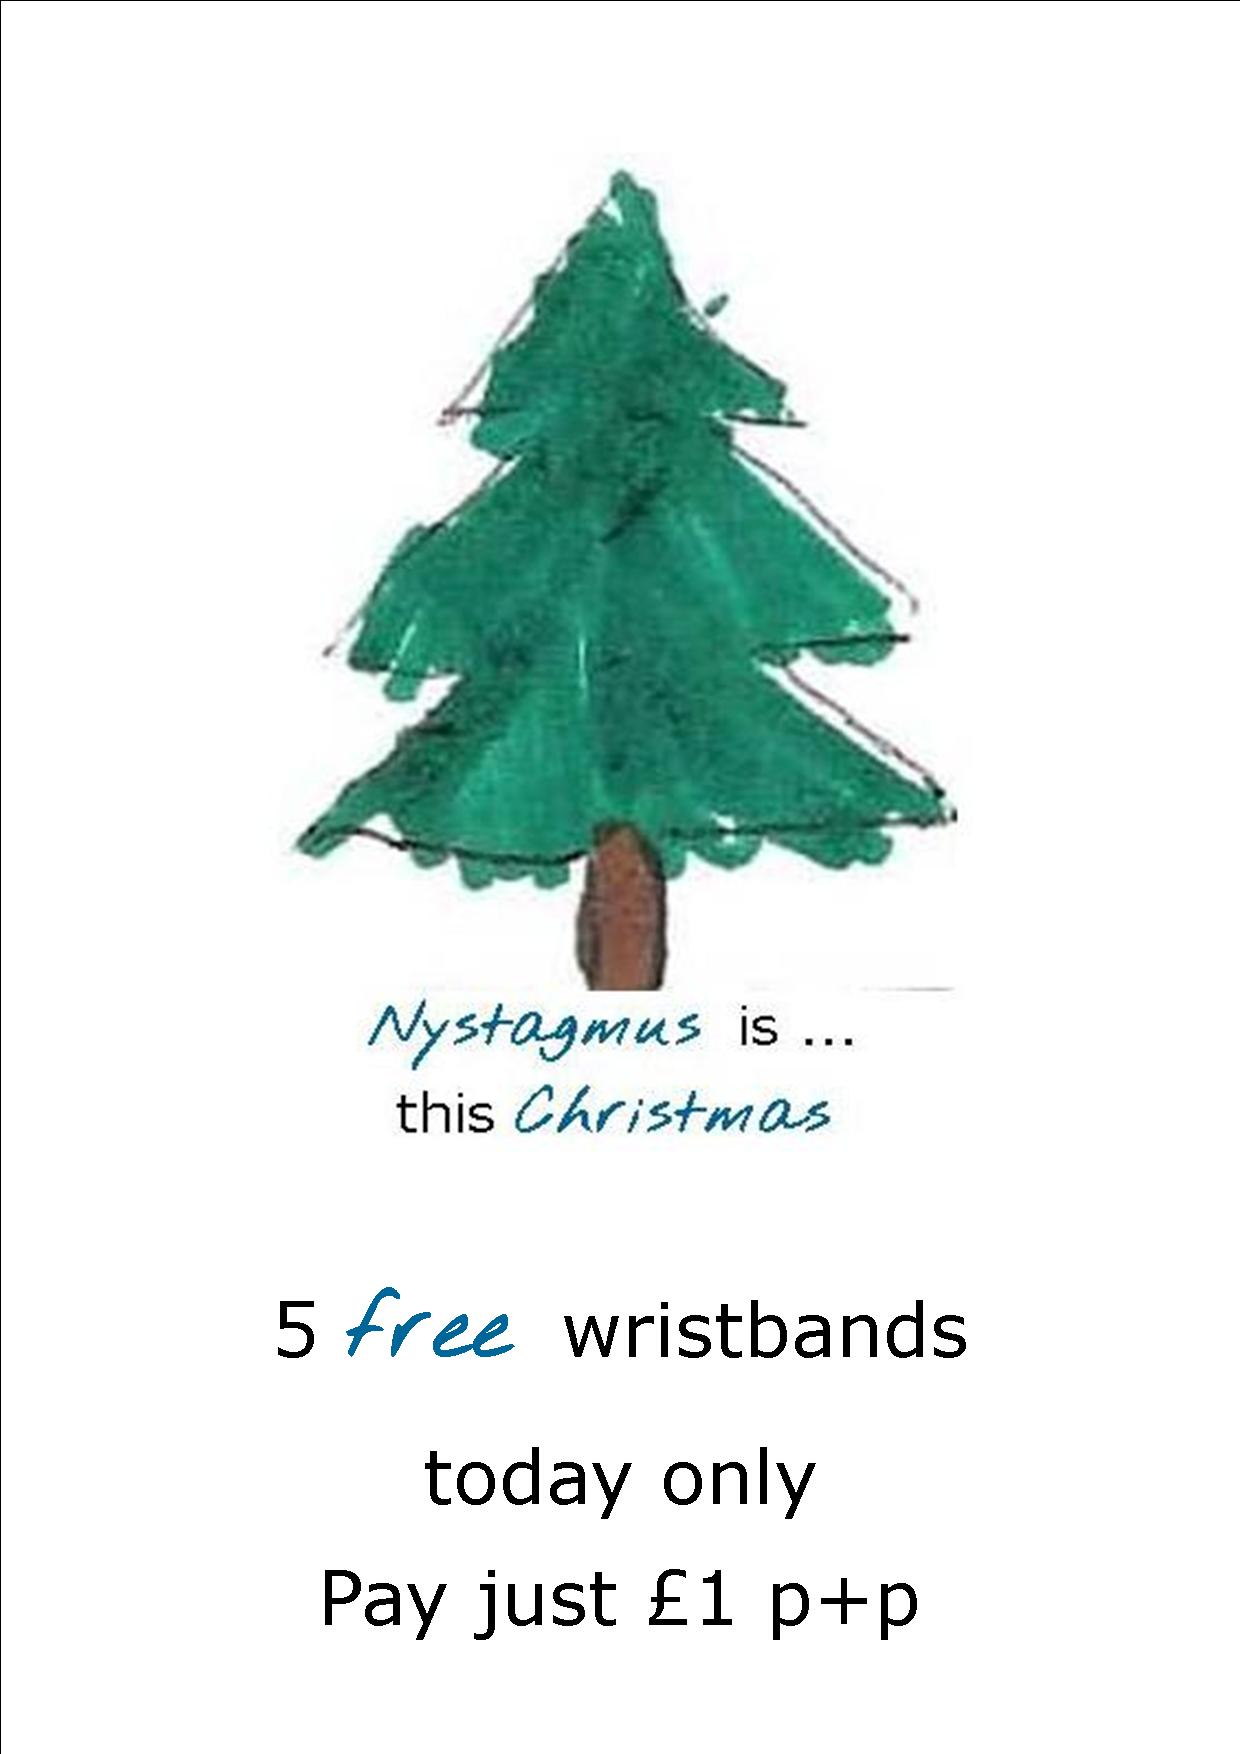 Free wristbands – today only!